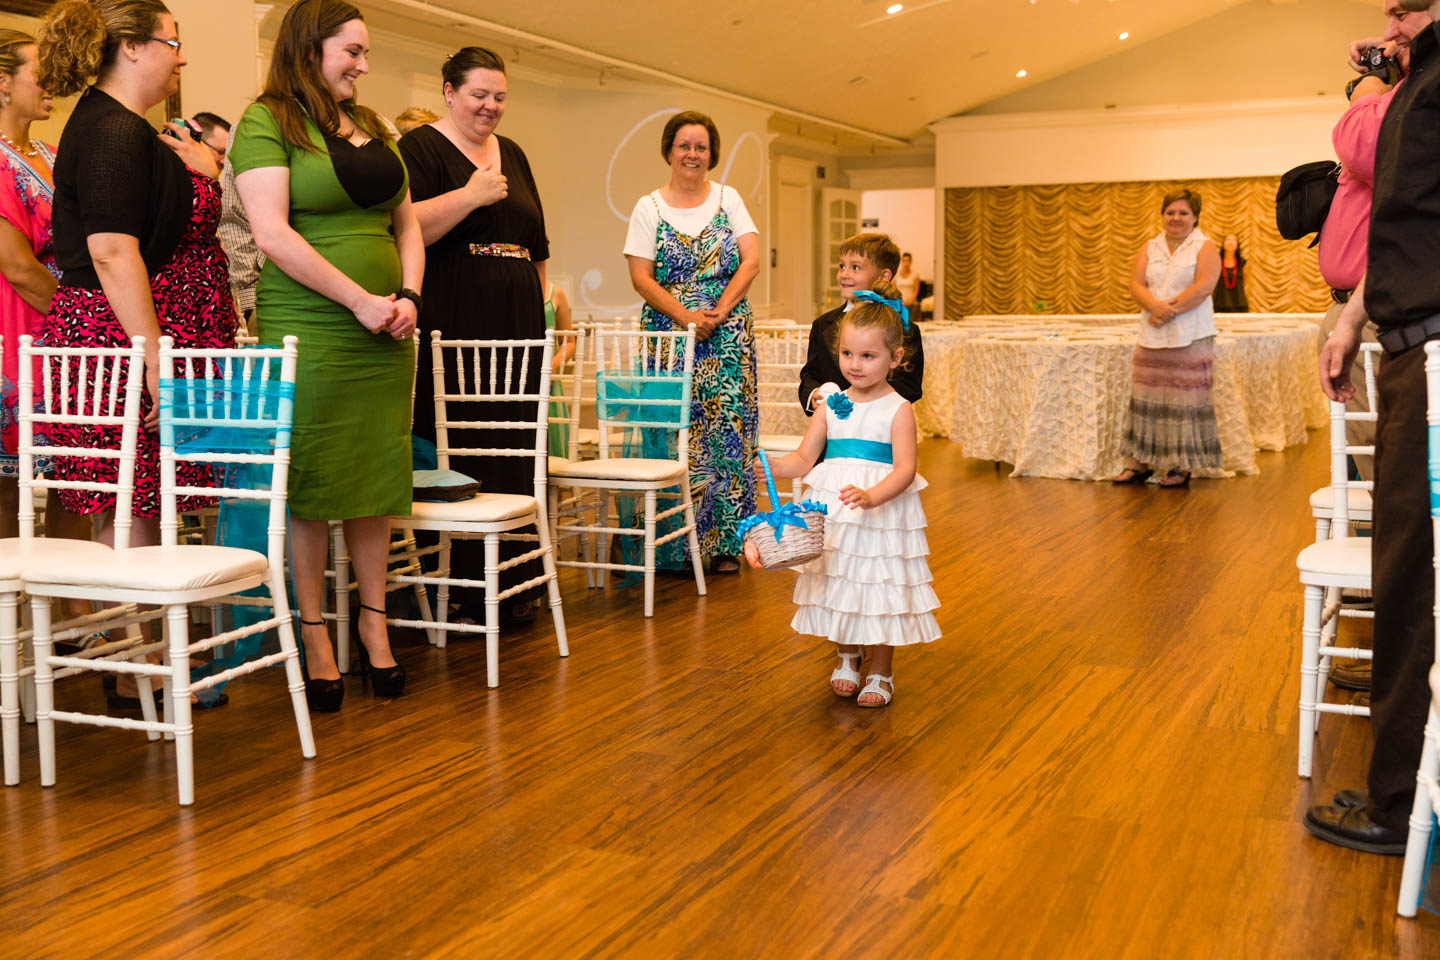 Flower girl throwing absolutely no flowers